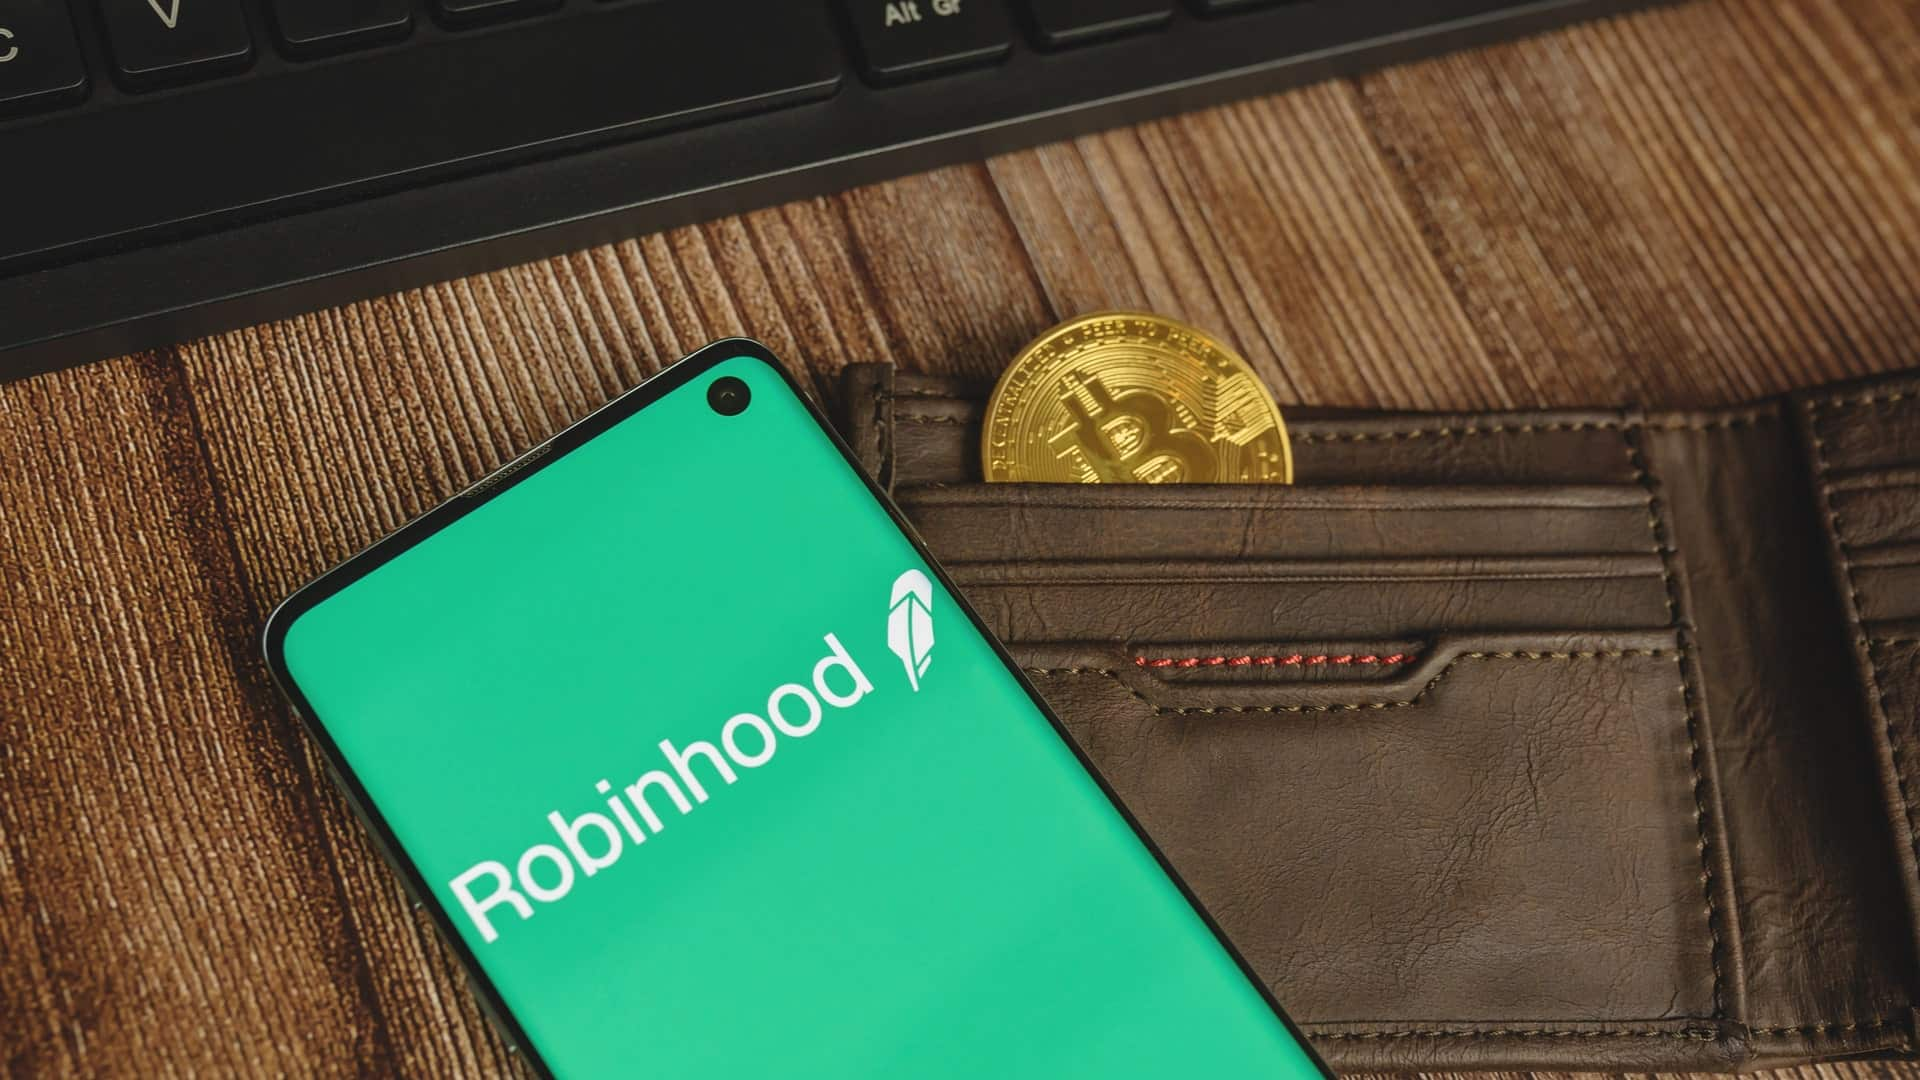 A new crypto-wallet from Robinhood is coming soon